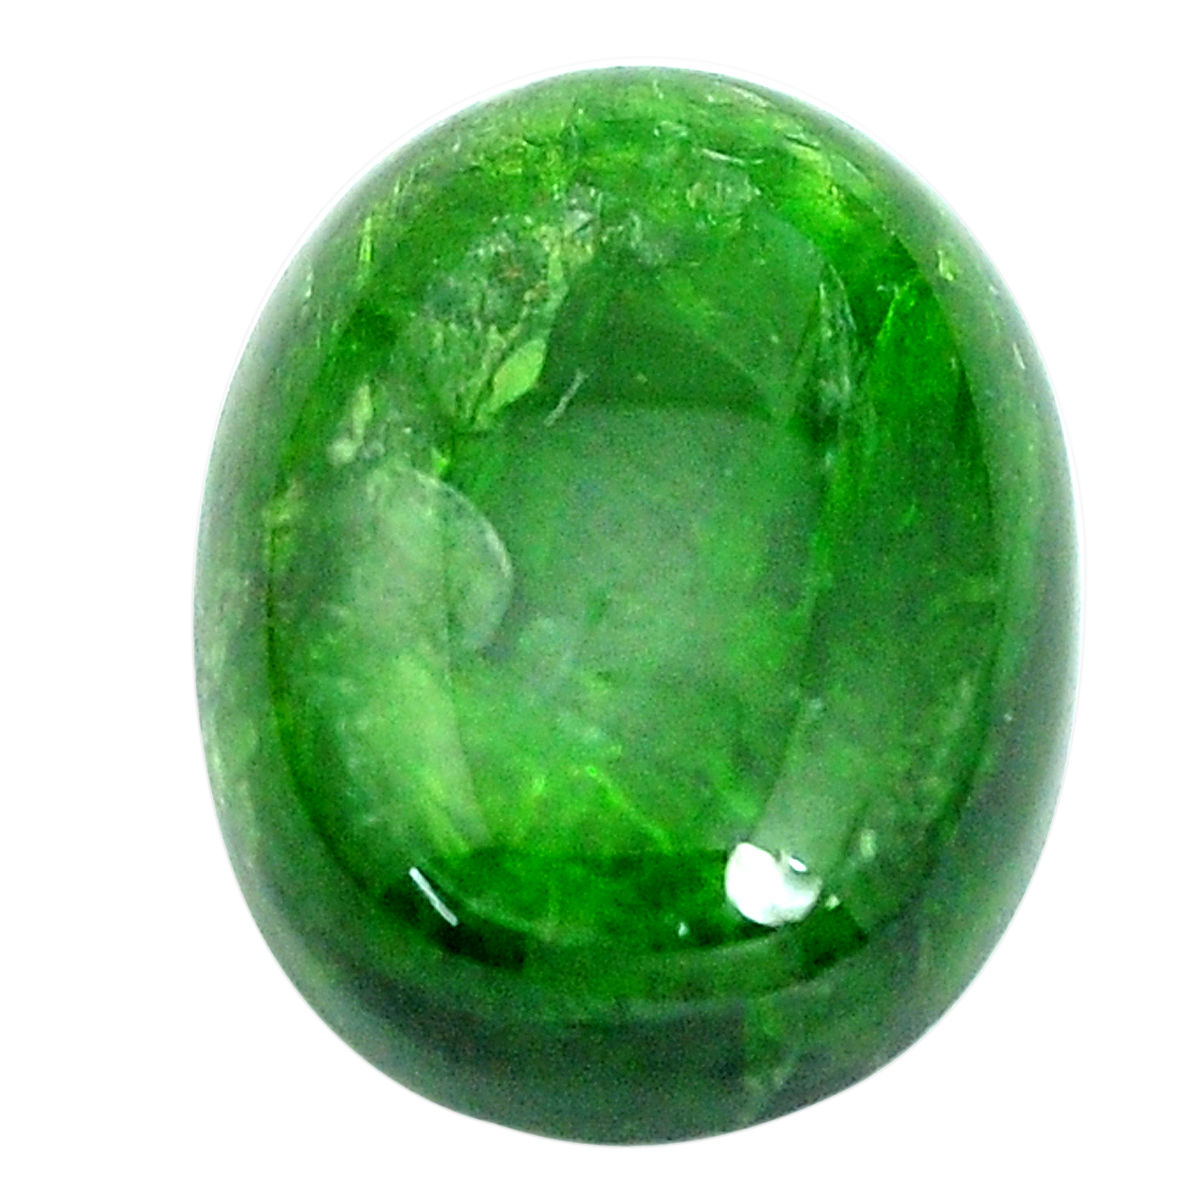 Chrome Diopside With Ziosite Cabochon...Oval Cabochon...26x17x6 mm...25 Cts...#G9049